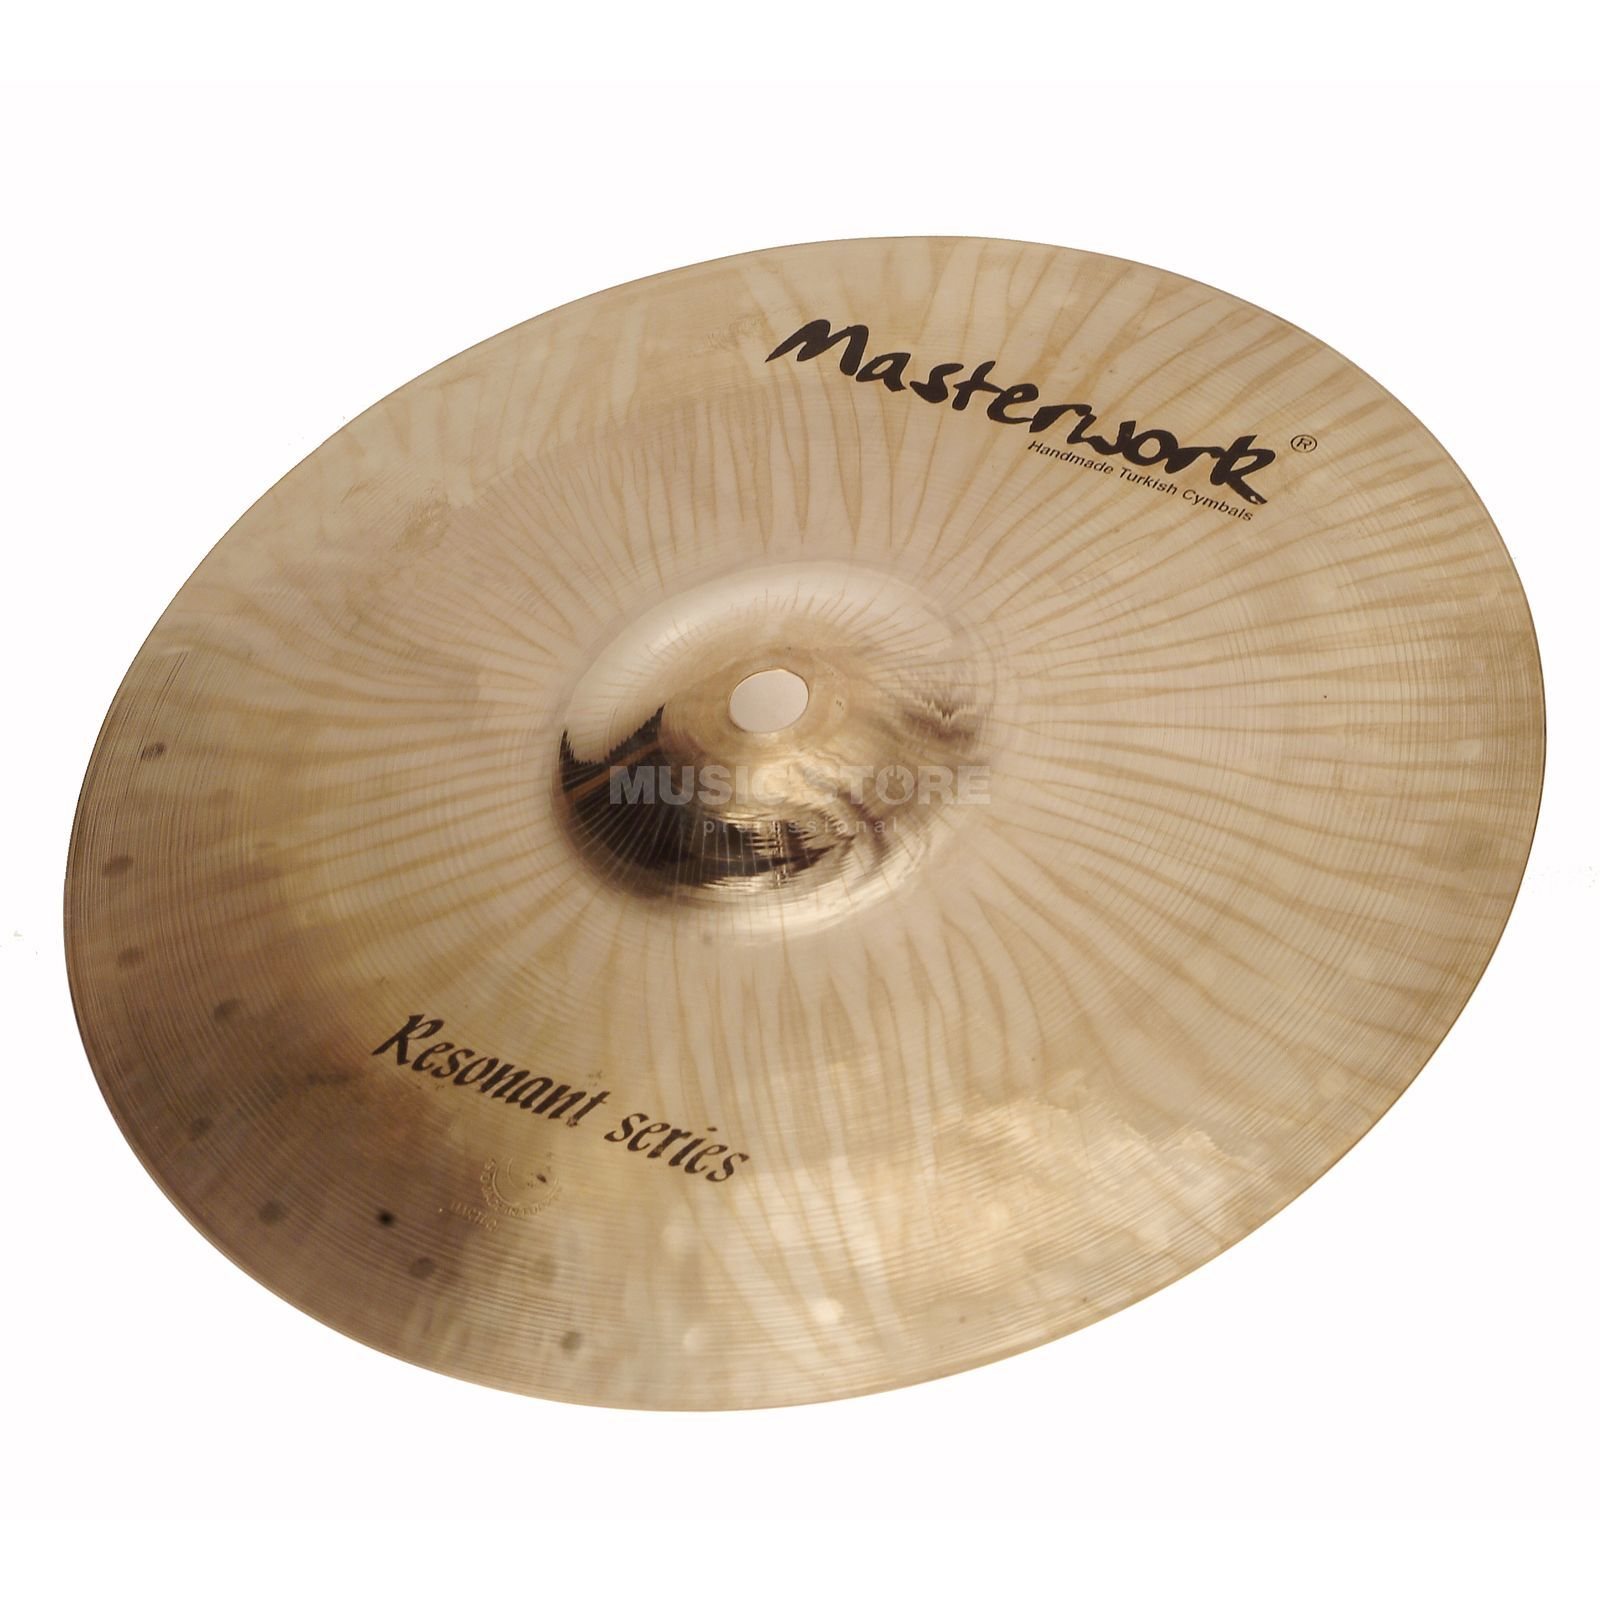 "Masterwork Resonant Splash 8"" Brilliant Finish Product Image"